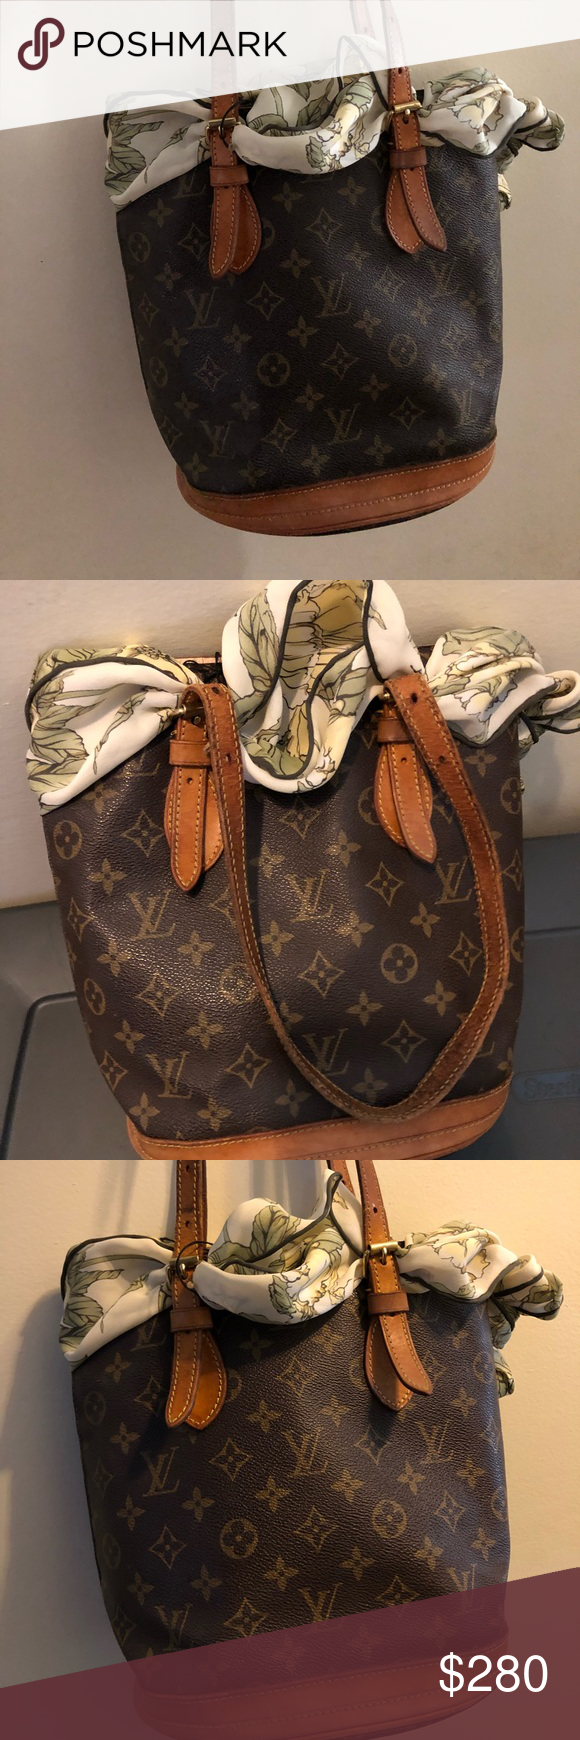 fa3e29cb058 Louis Vuitton Petite Bucket Louis Vuitton Petite Bucket - Vintage - has  wear Louis Vuitton Bags Totes